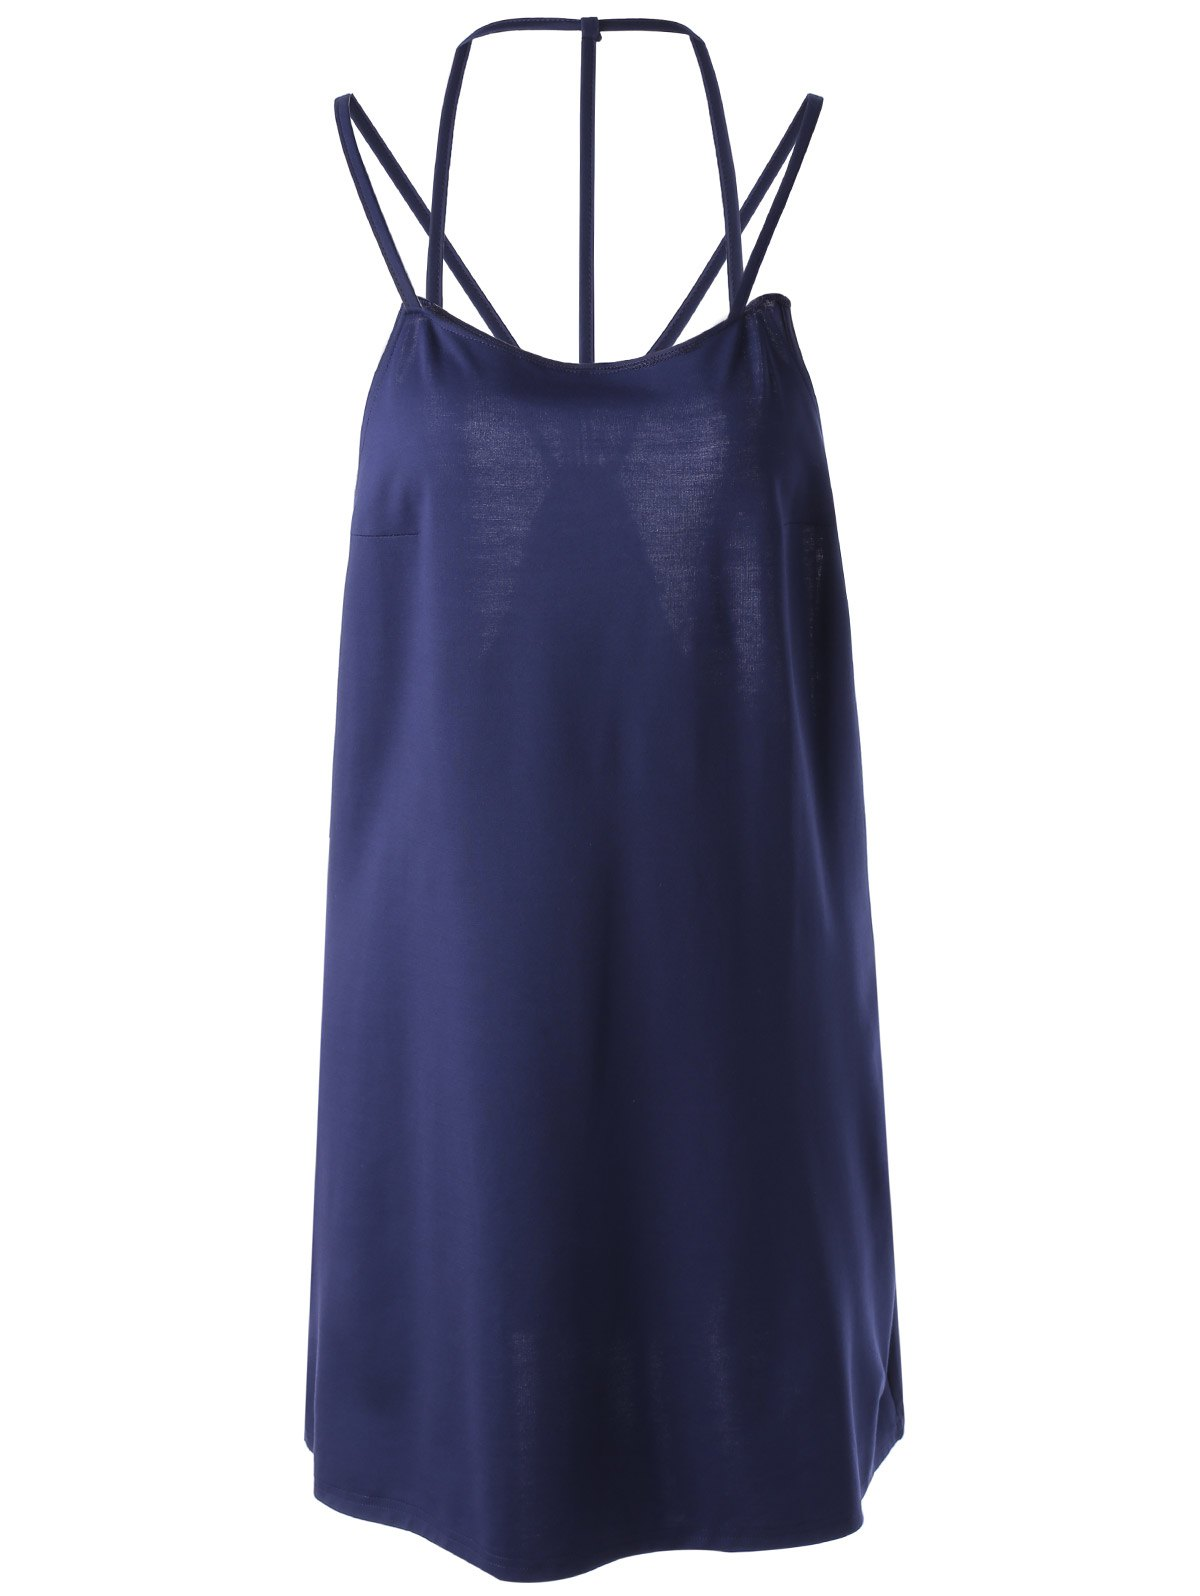 Stylish Backless Sleeveless Pure Color Dress For Women